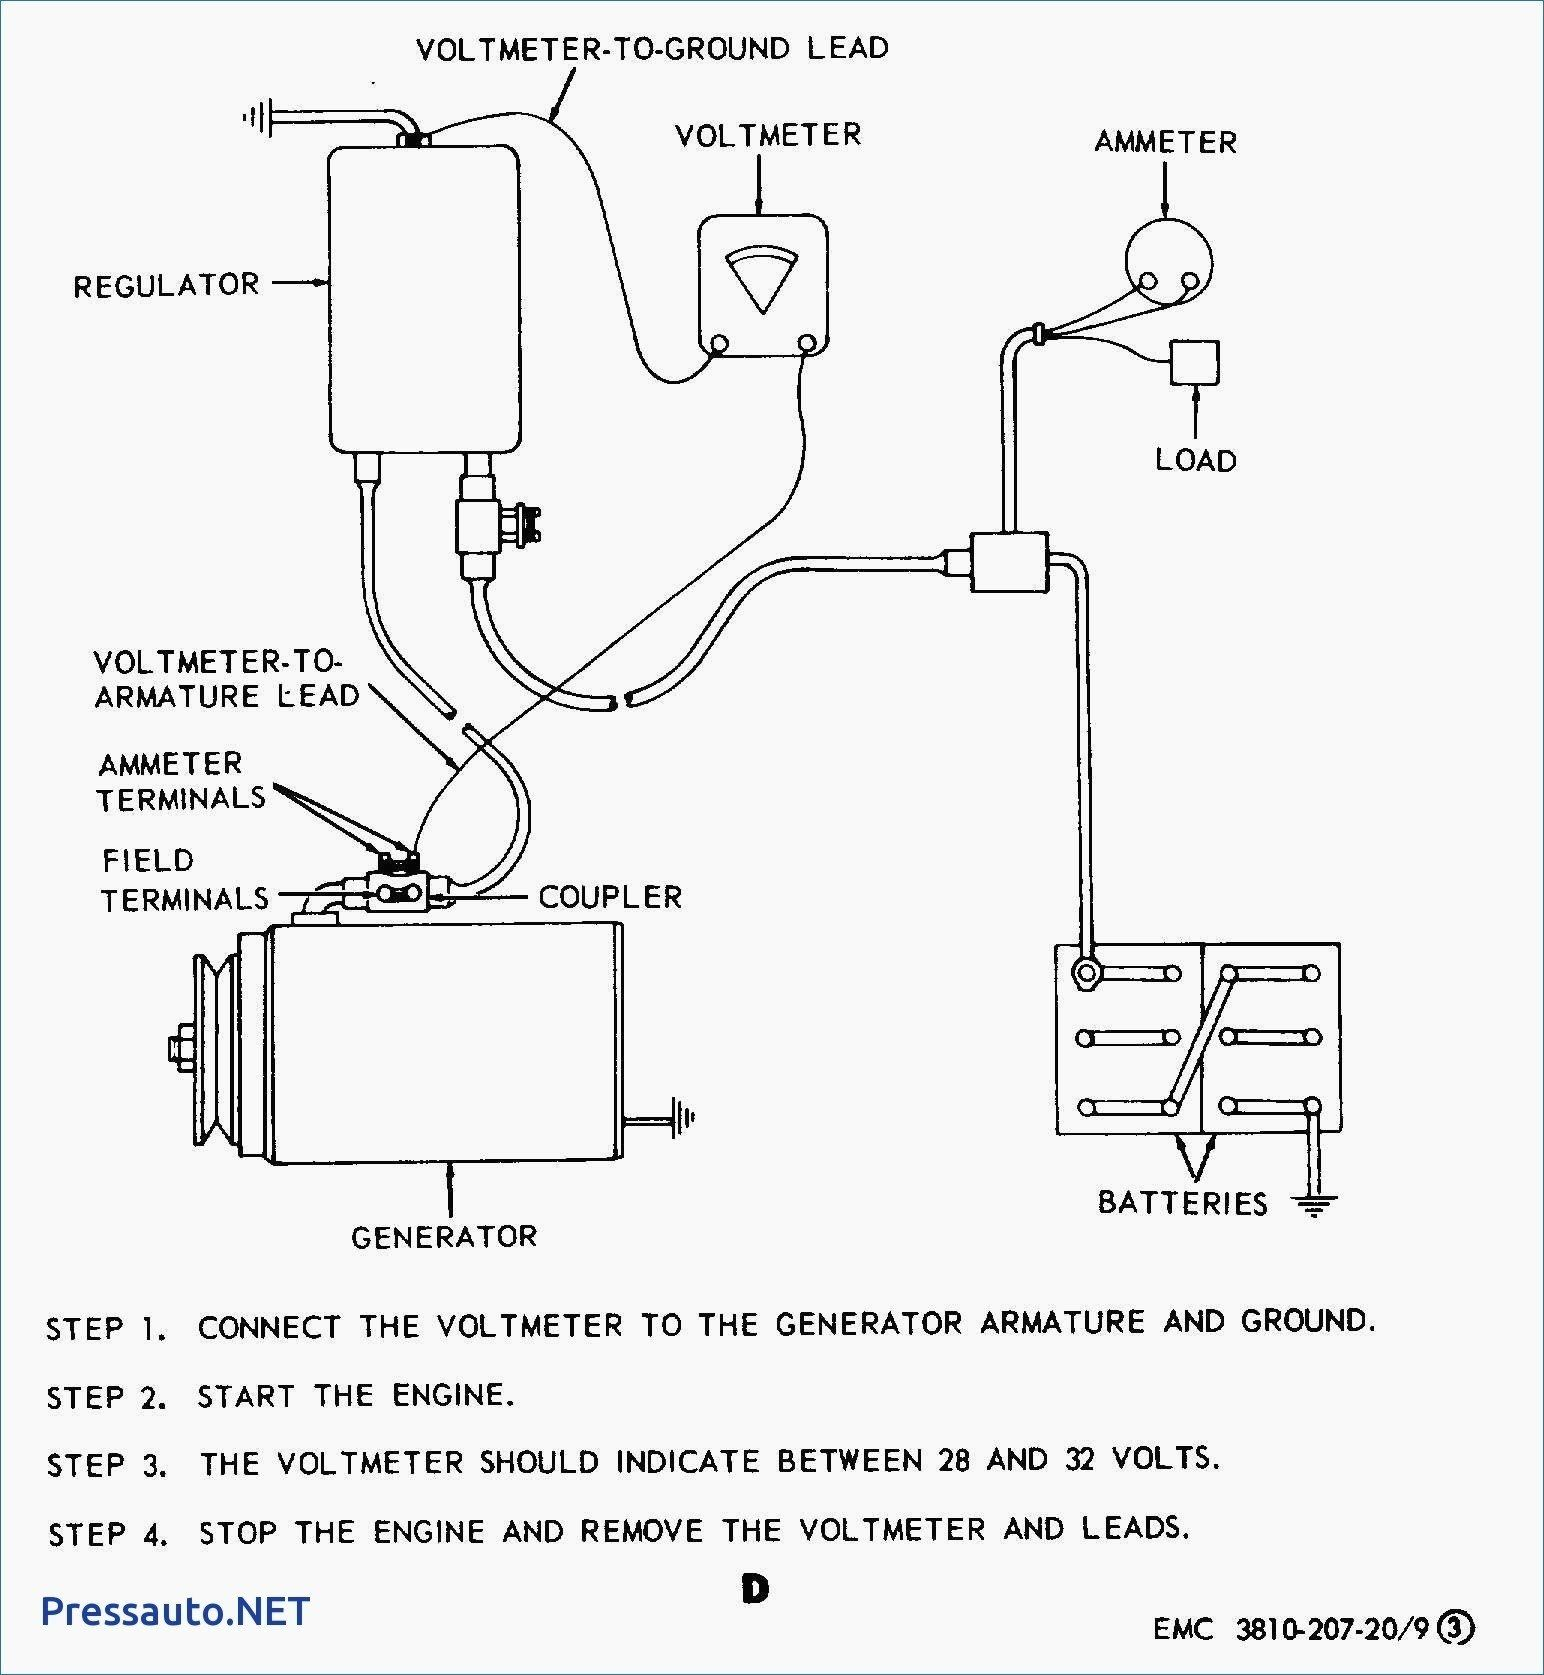 charming 4 wire gm alternator wiring diagram photos electrical regarding delco alternator wiring diagram 10541 [ 1544 x 1675 Pixel ]